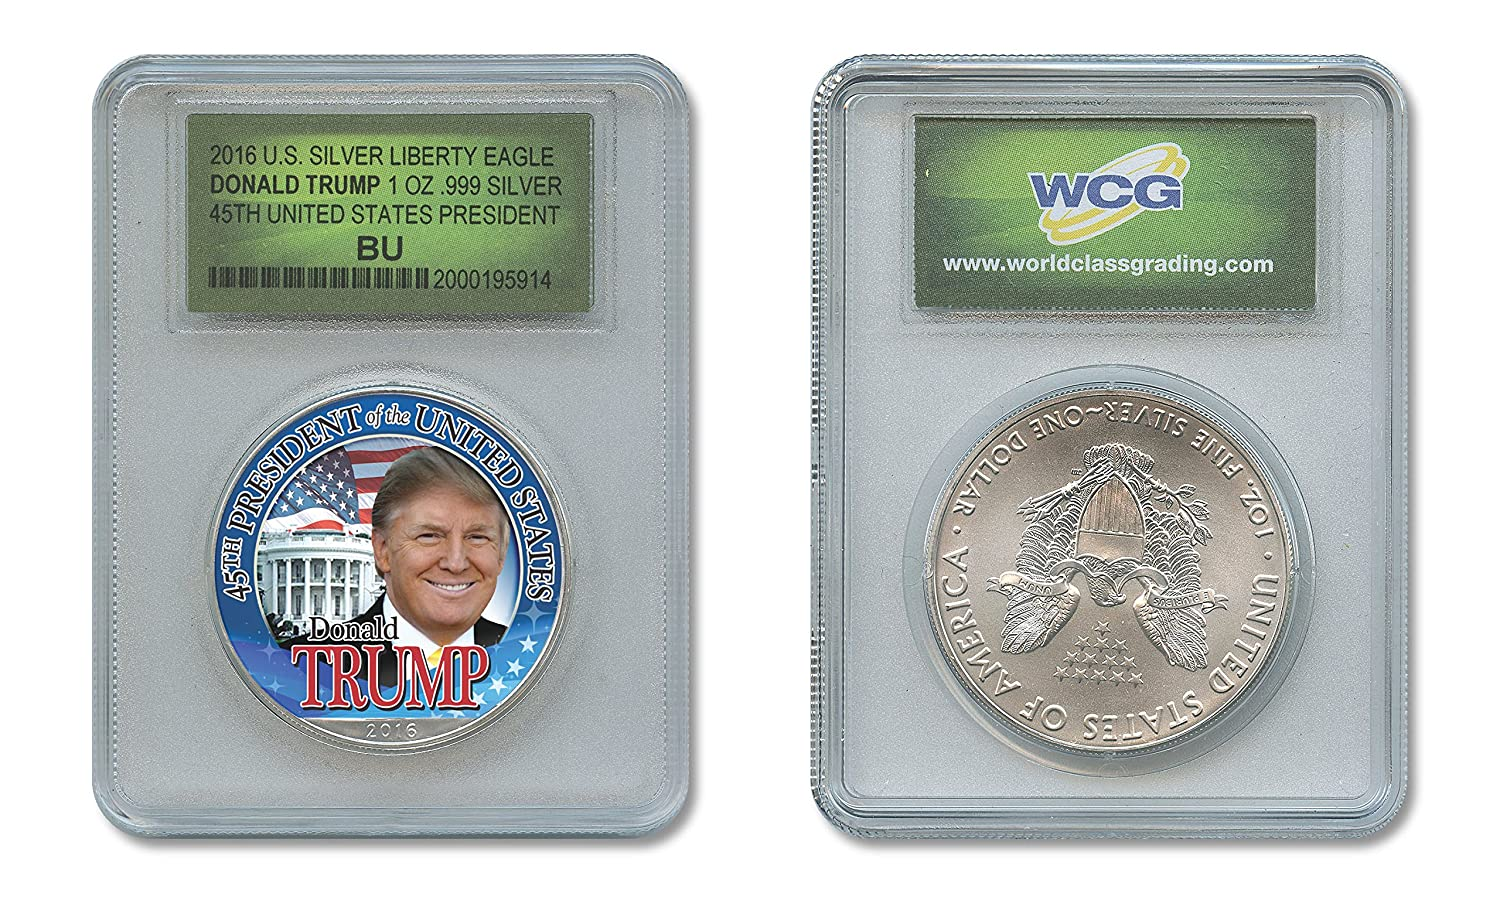 DONALD TRUMP 45th PRESIDENT 2016 1 oz American .999 Pure Silver Eagle SPECIAL HOLDER The Merrick Mint